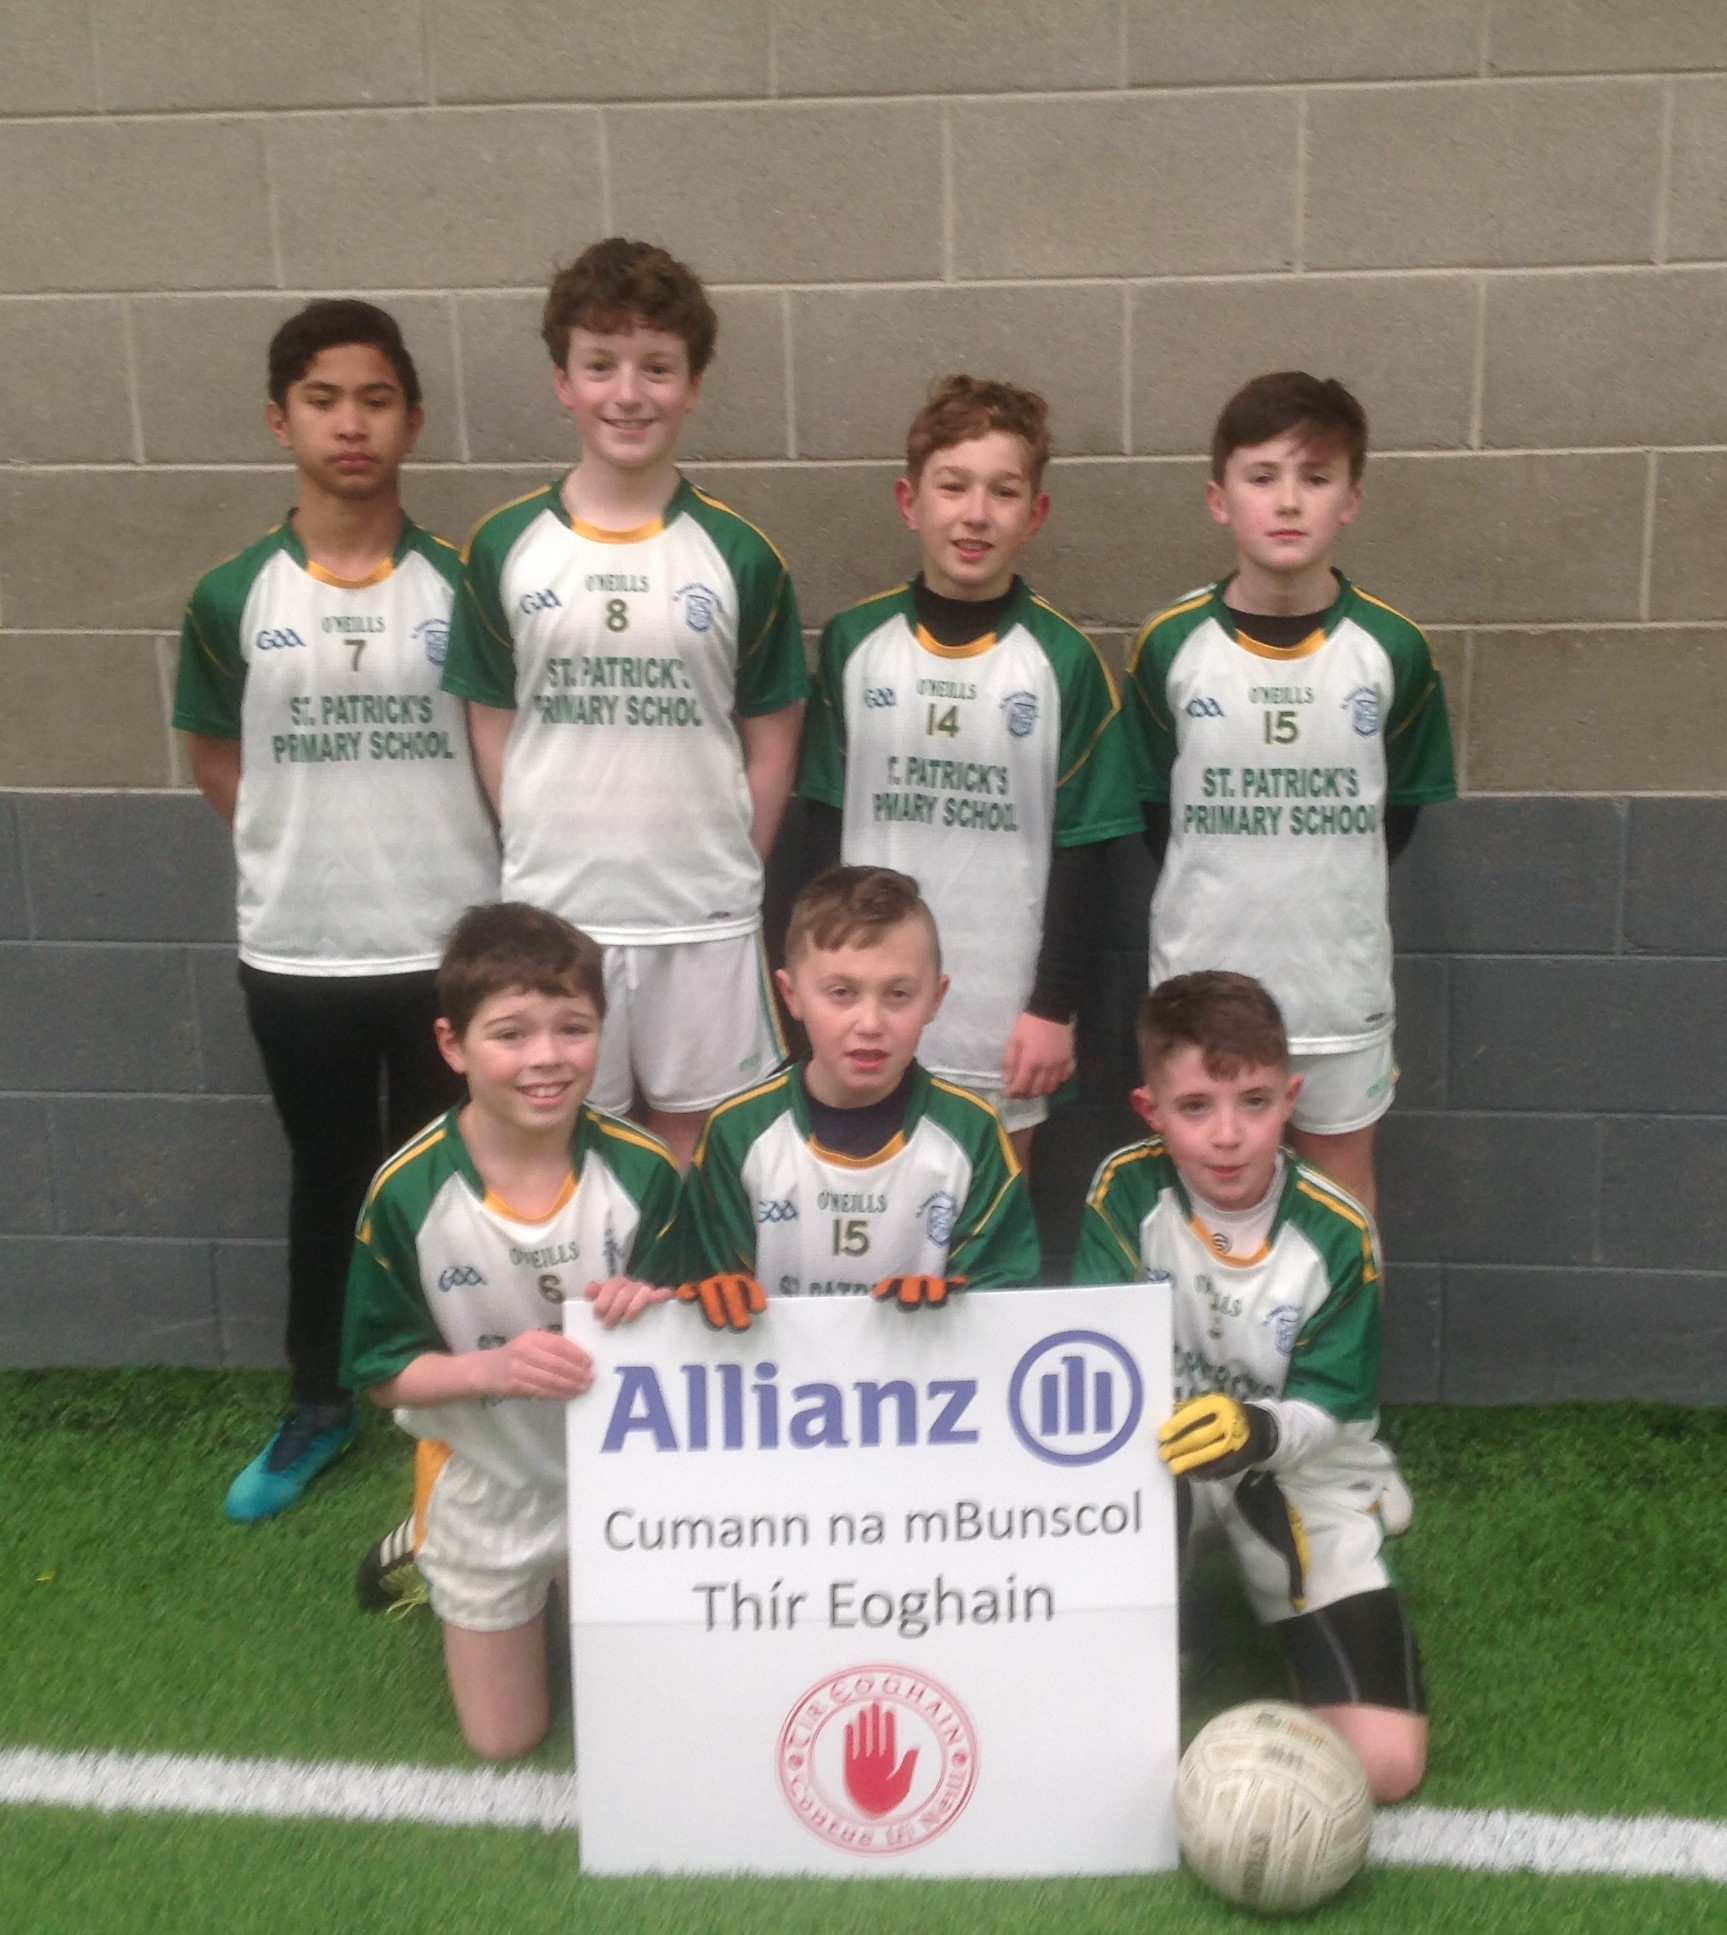 ALLIANZ Cumann na mBunscol – Boys' INDOOR FOOTBALL Heat 6: LOUGHVIEW